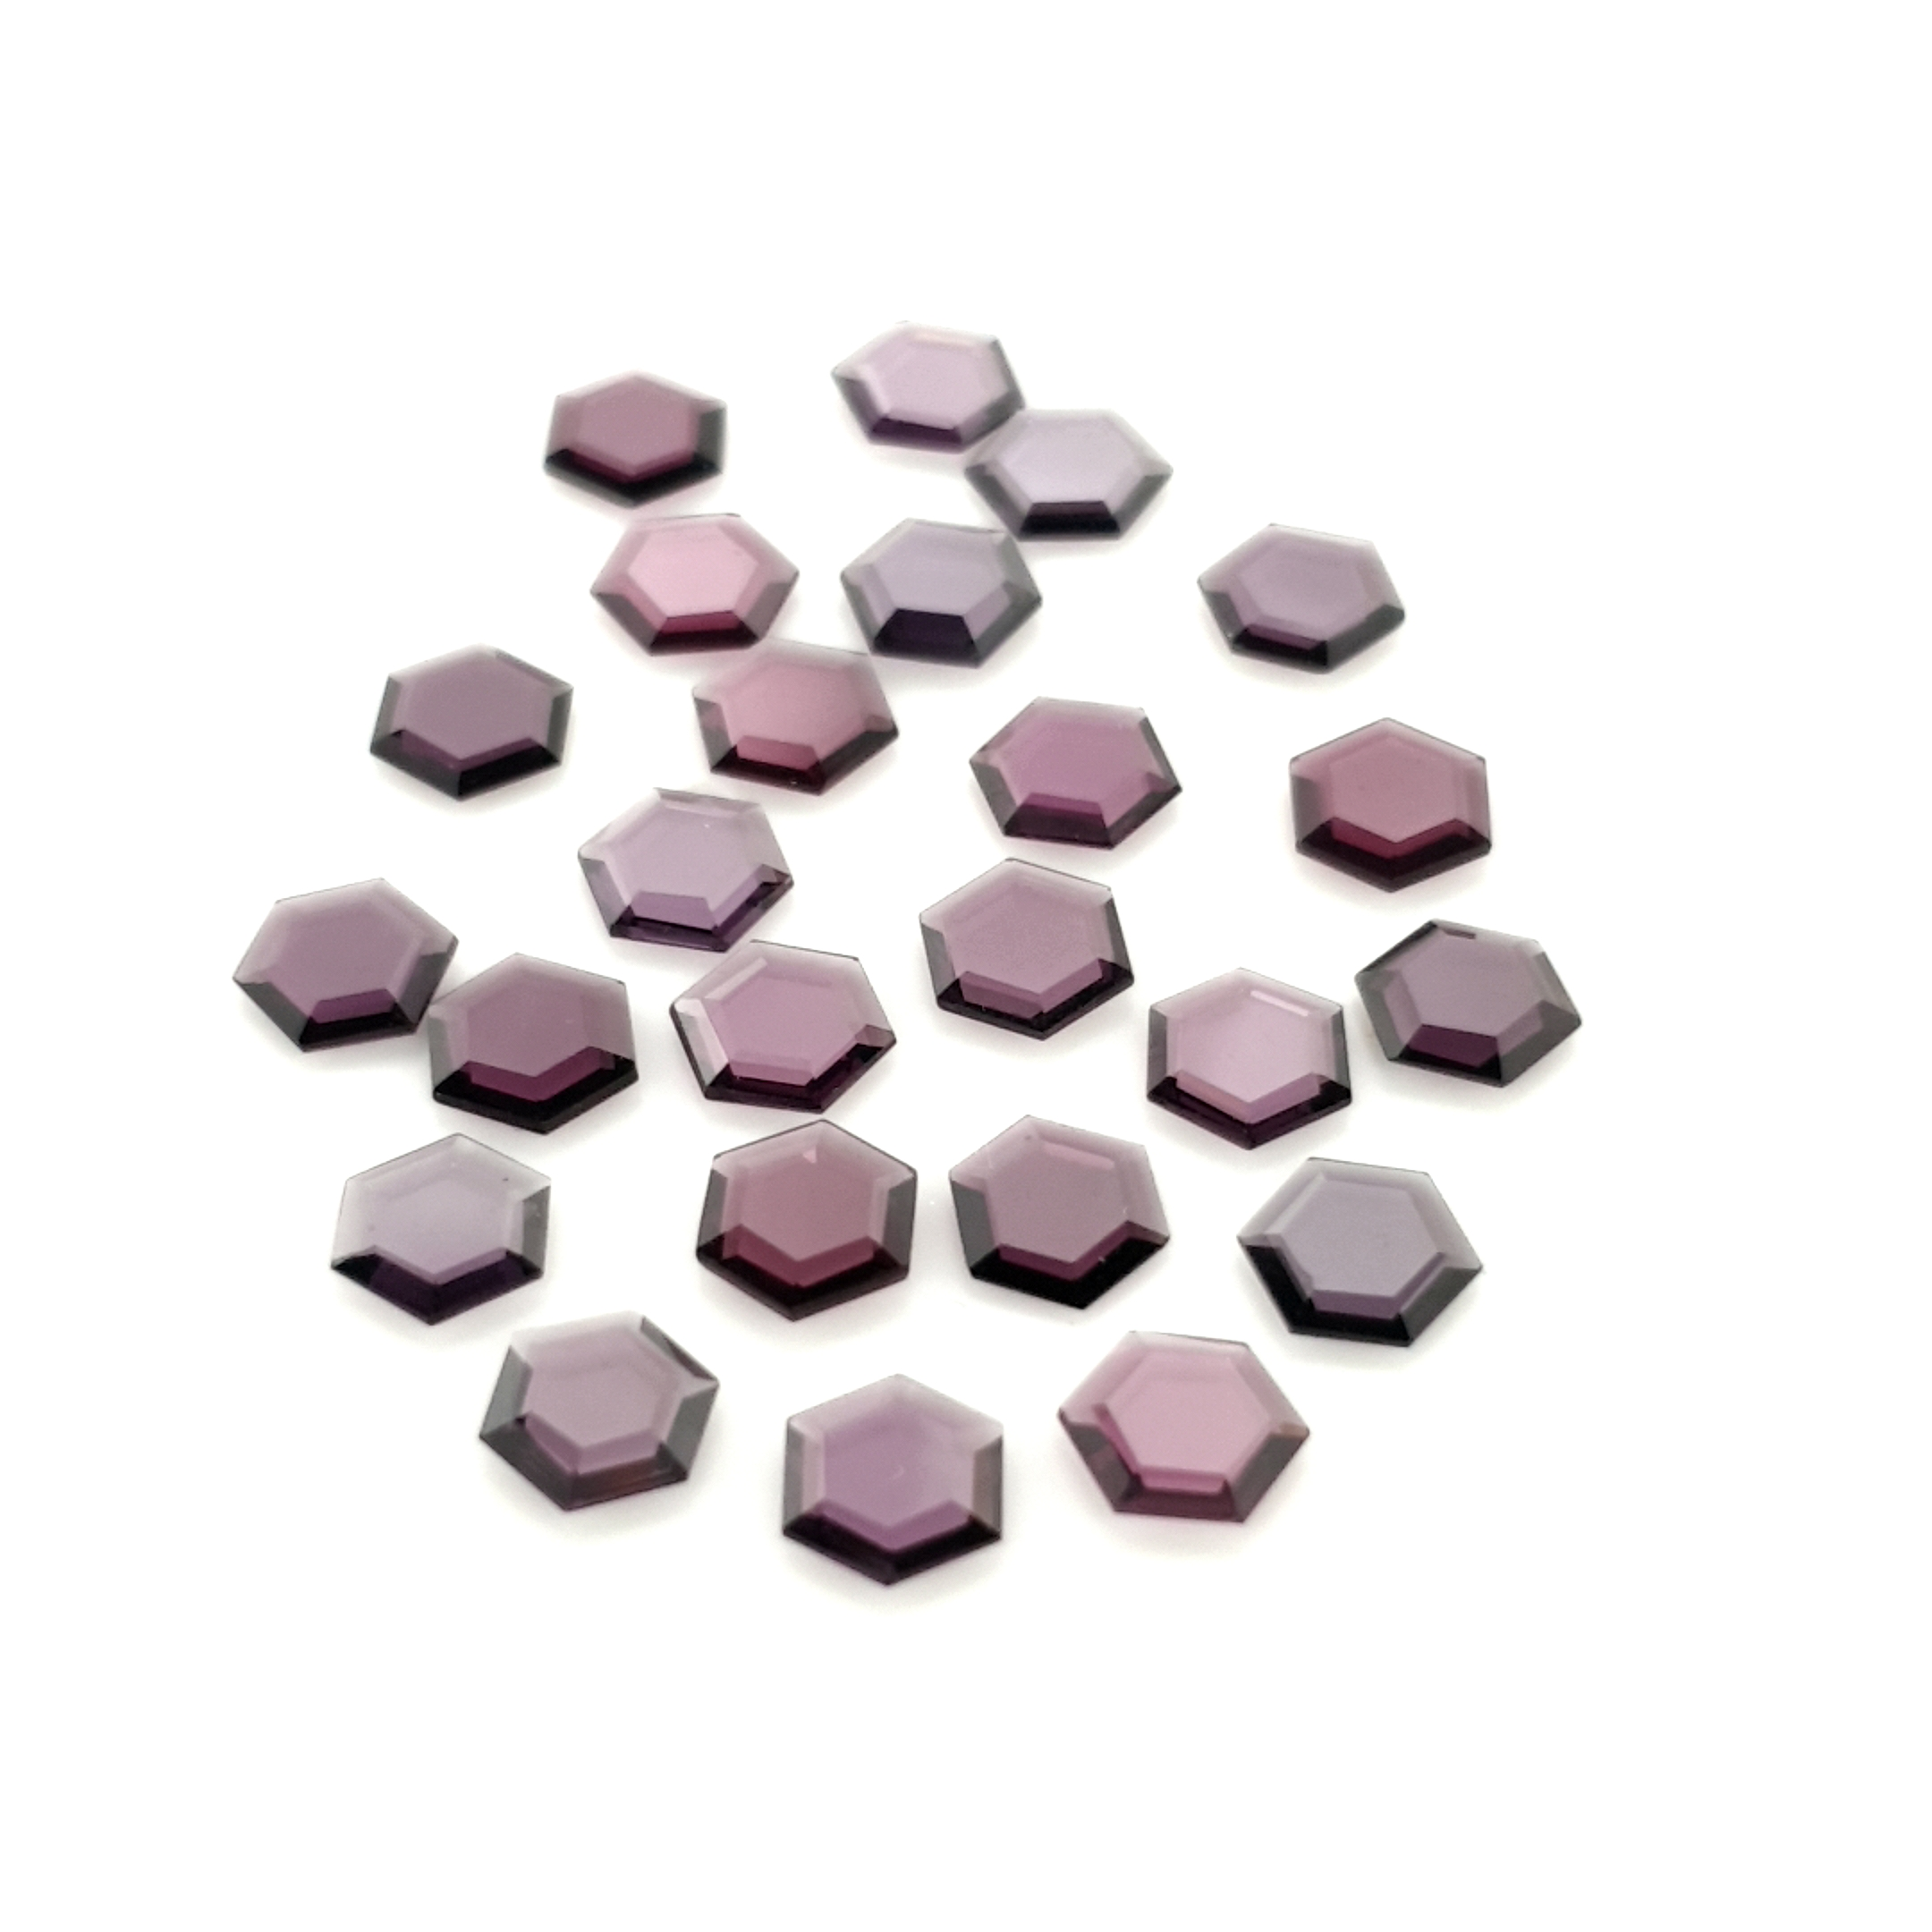 5,5mm Hexagone Violet Spinel SNK19C1 ClaudiaHamann__2021-02-16-23-47-05